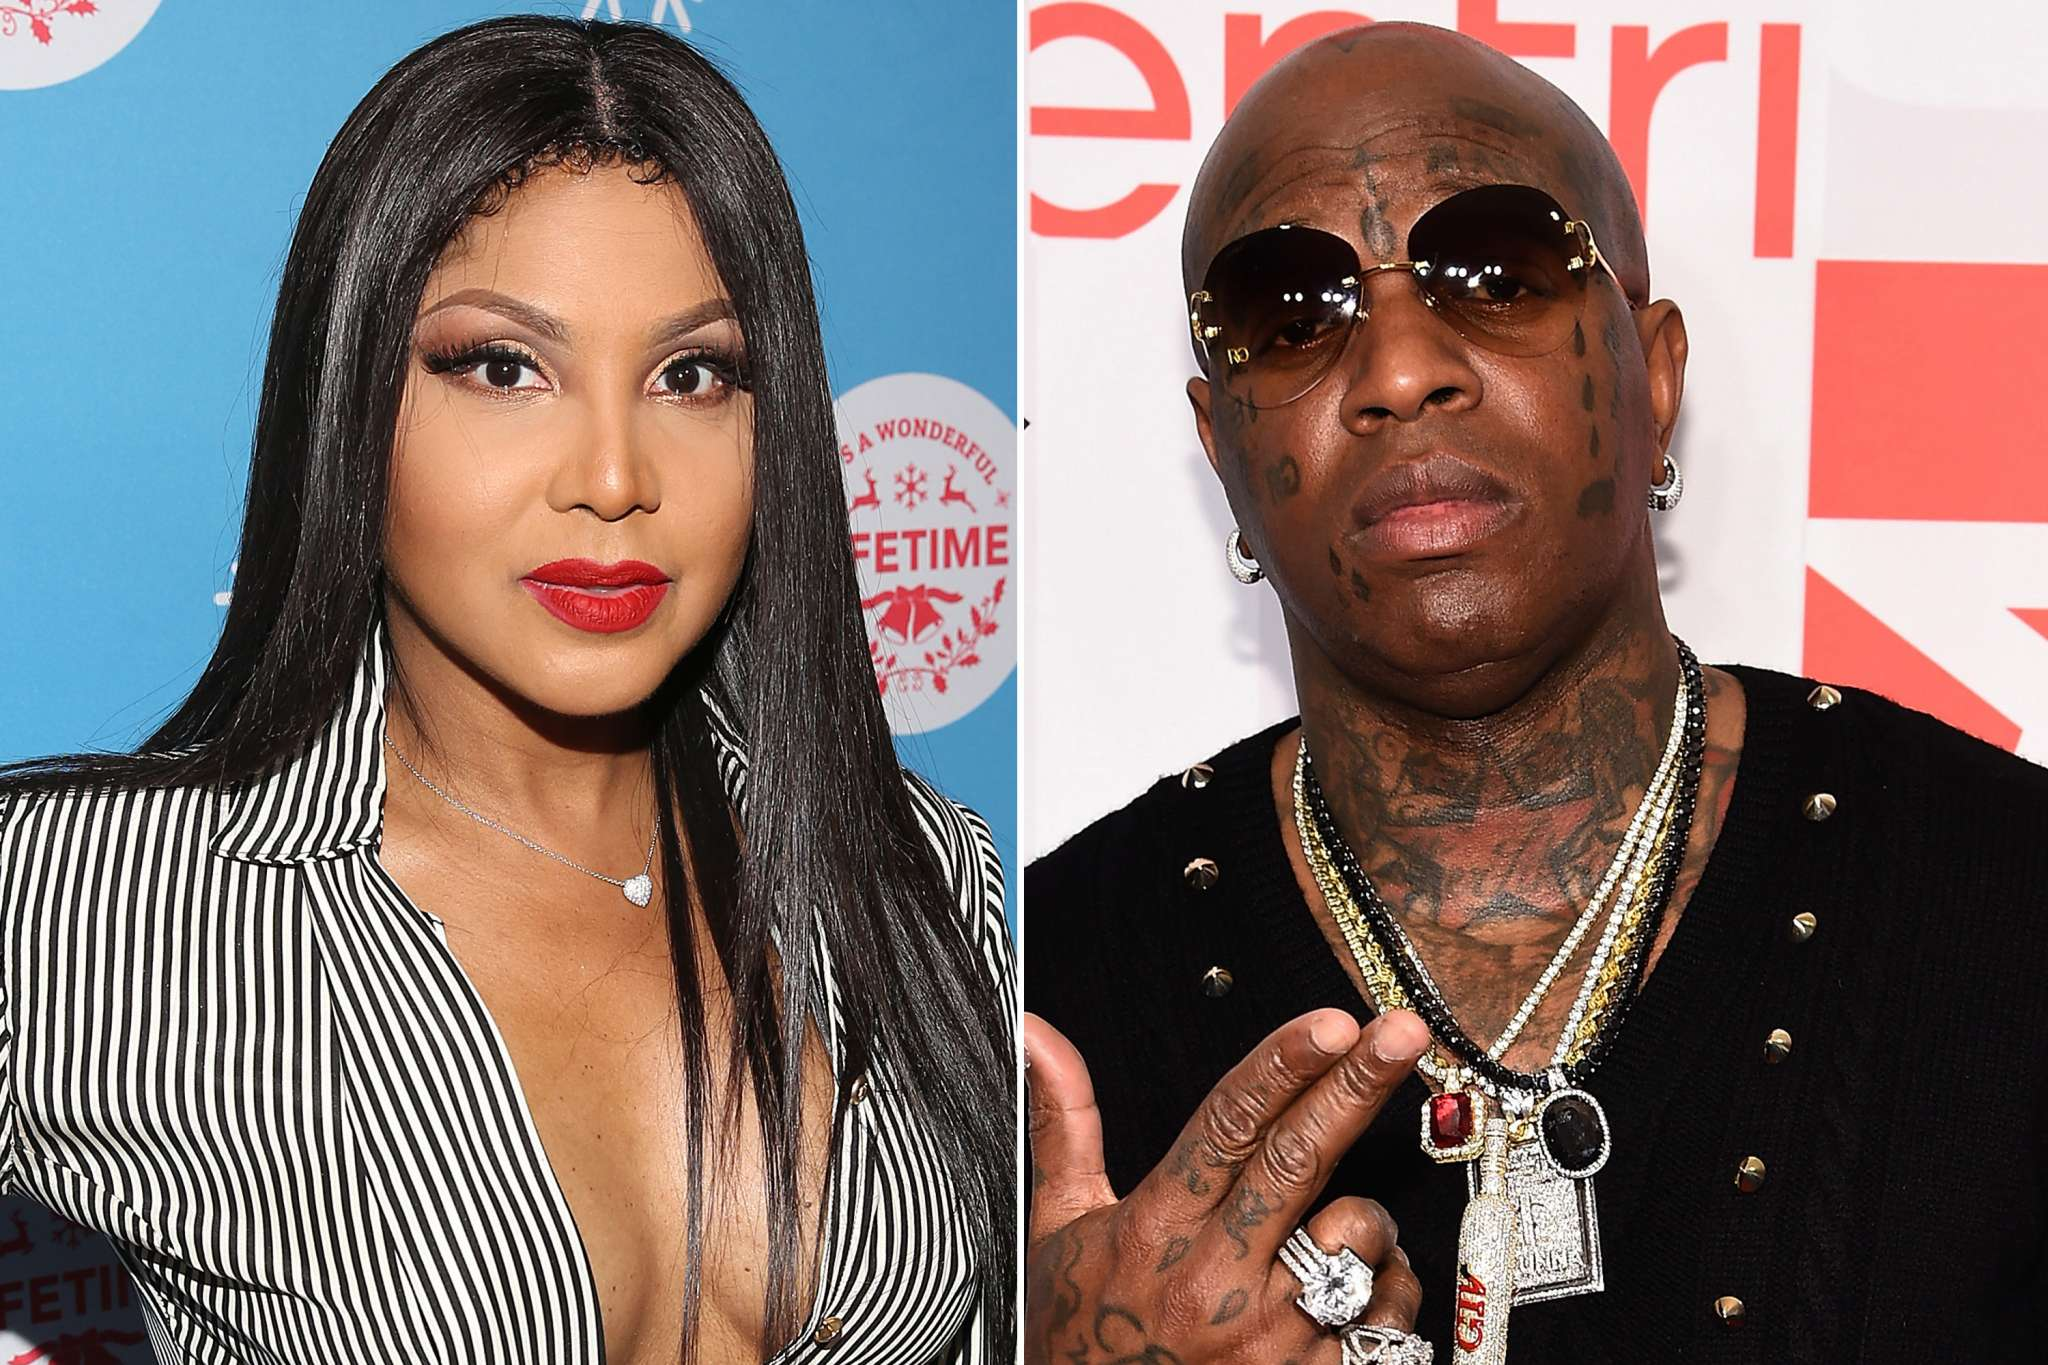 toni-braxtons-sisters-talk-about-her-relationship-with-birdman-are-they-still-engaged